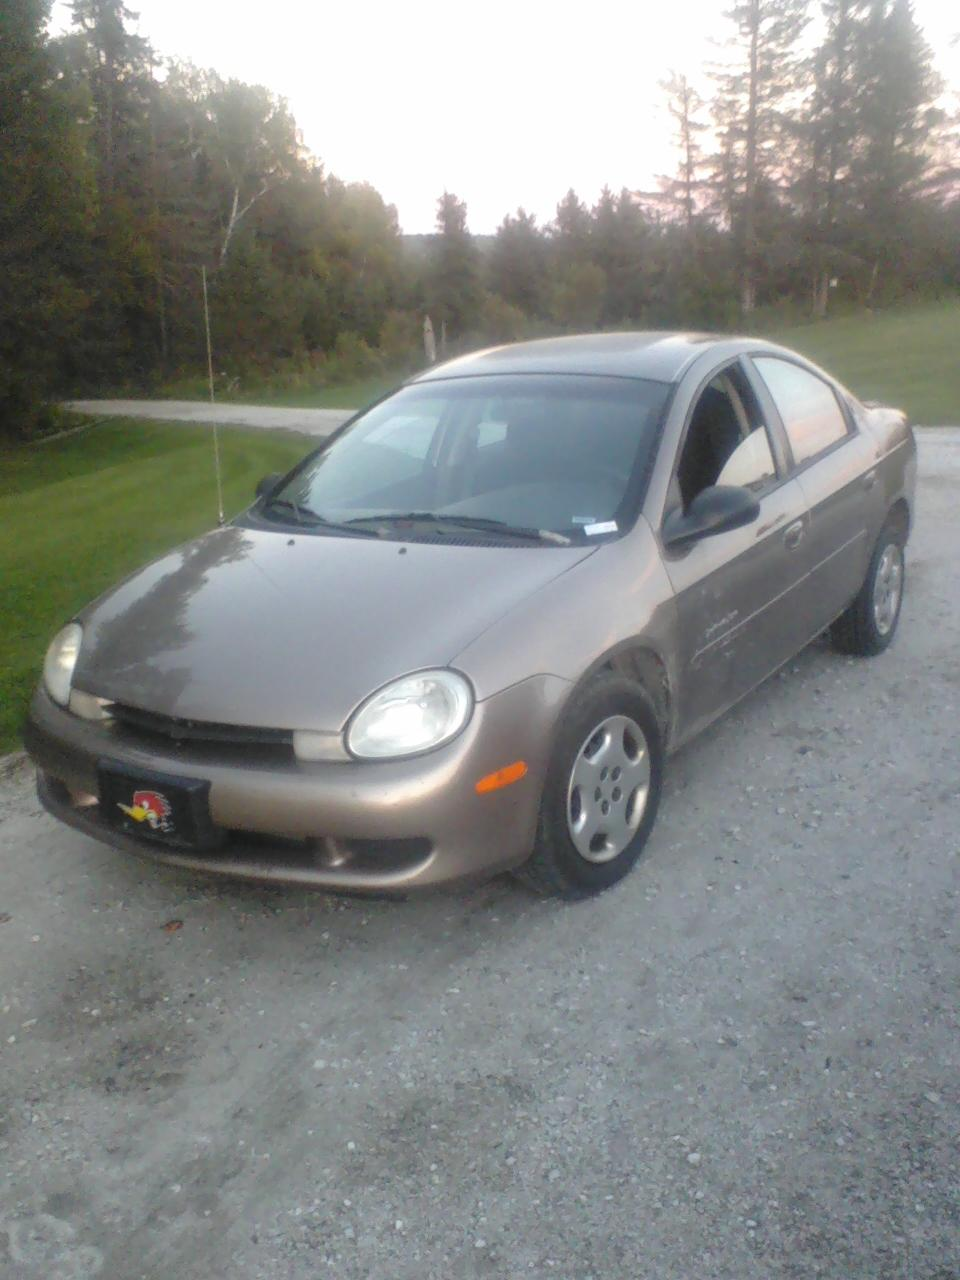 kingofkaz's 2001 Chrysler Neon